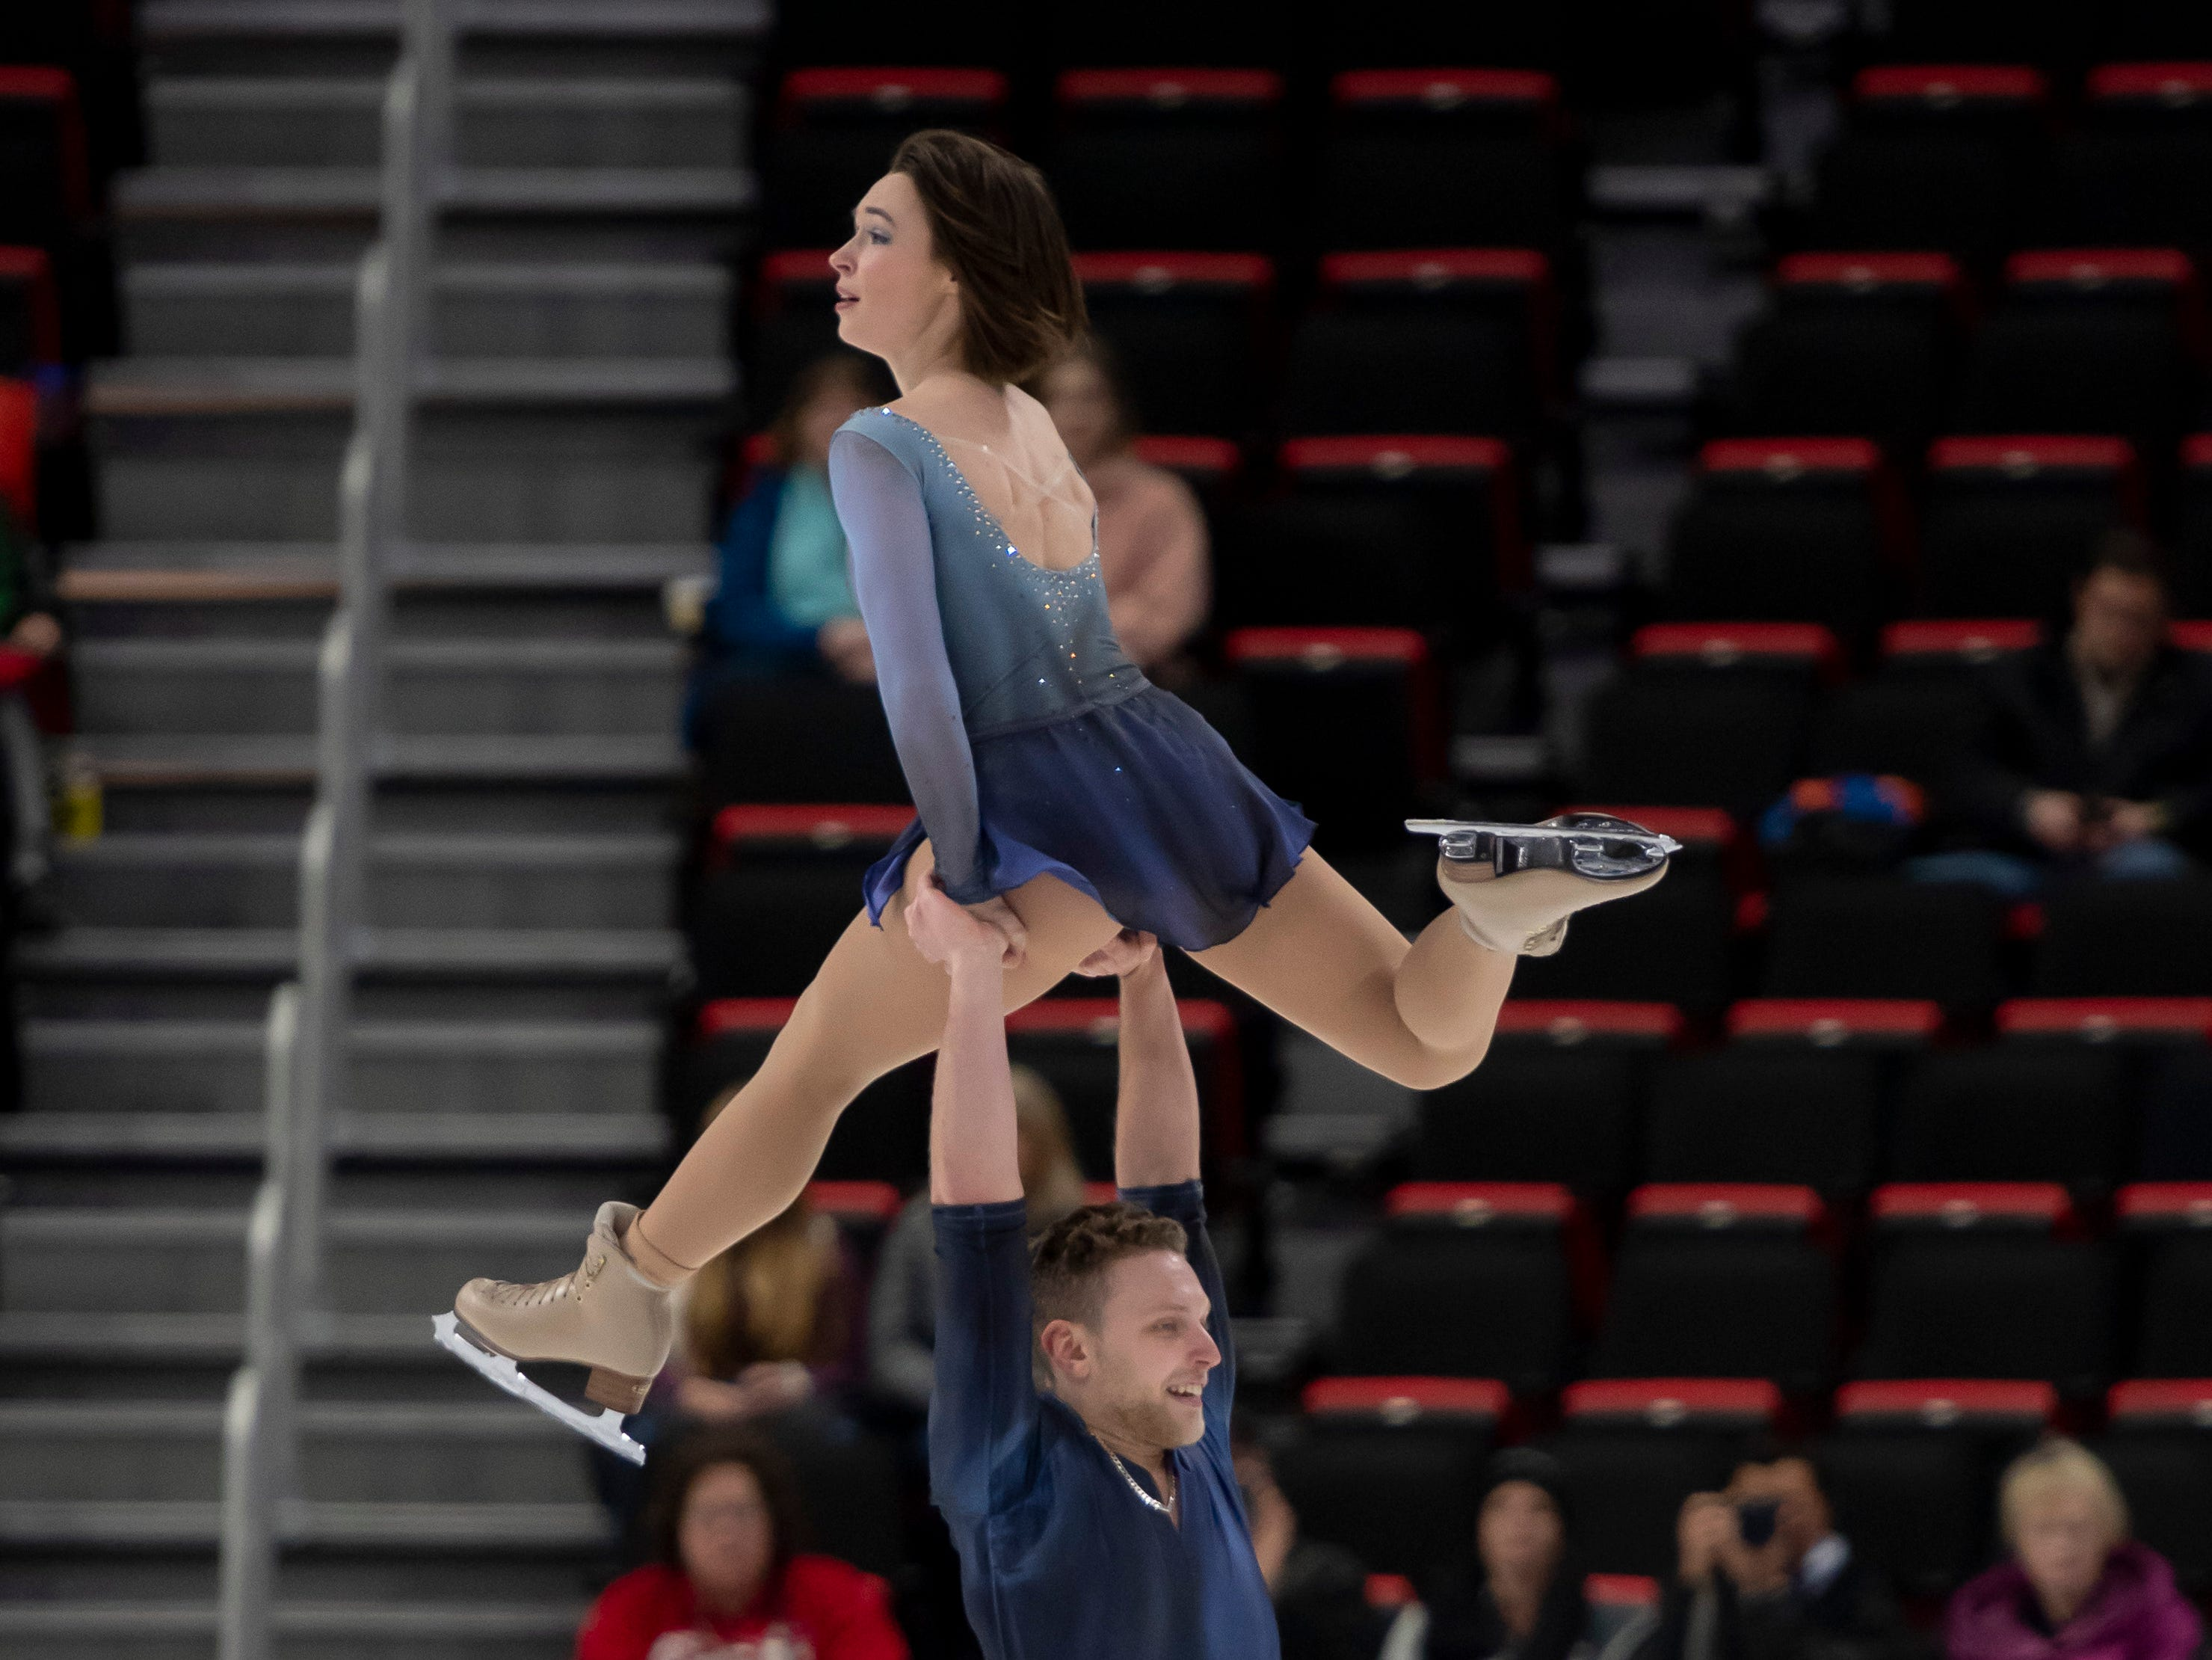 Allison Timien and Justin Highgate-Brutman compete in the senior pairs short program at the U.S. Figure Skating Championships, at Little Caesars Arena, in Detroit, January 24, 2019.  Highgate-Brutman is a Detroit native. (David Guralnick / The Detroit News)